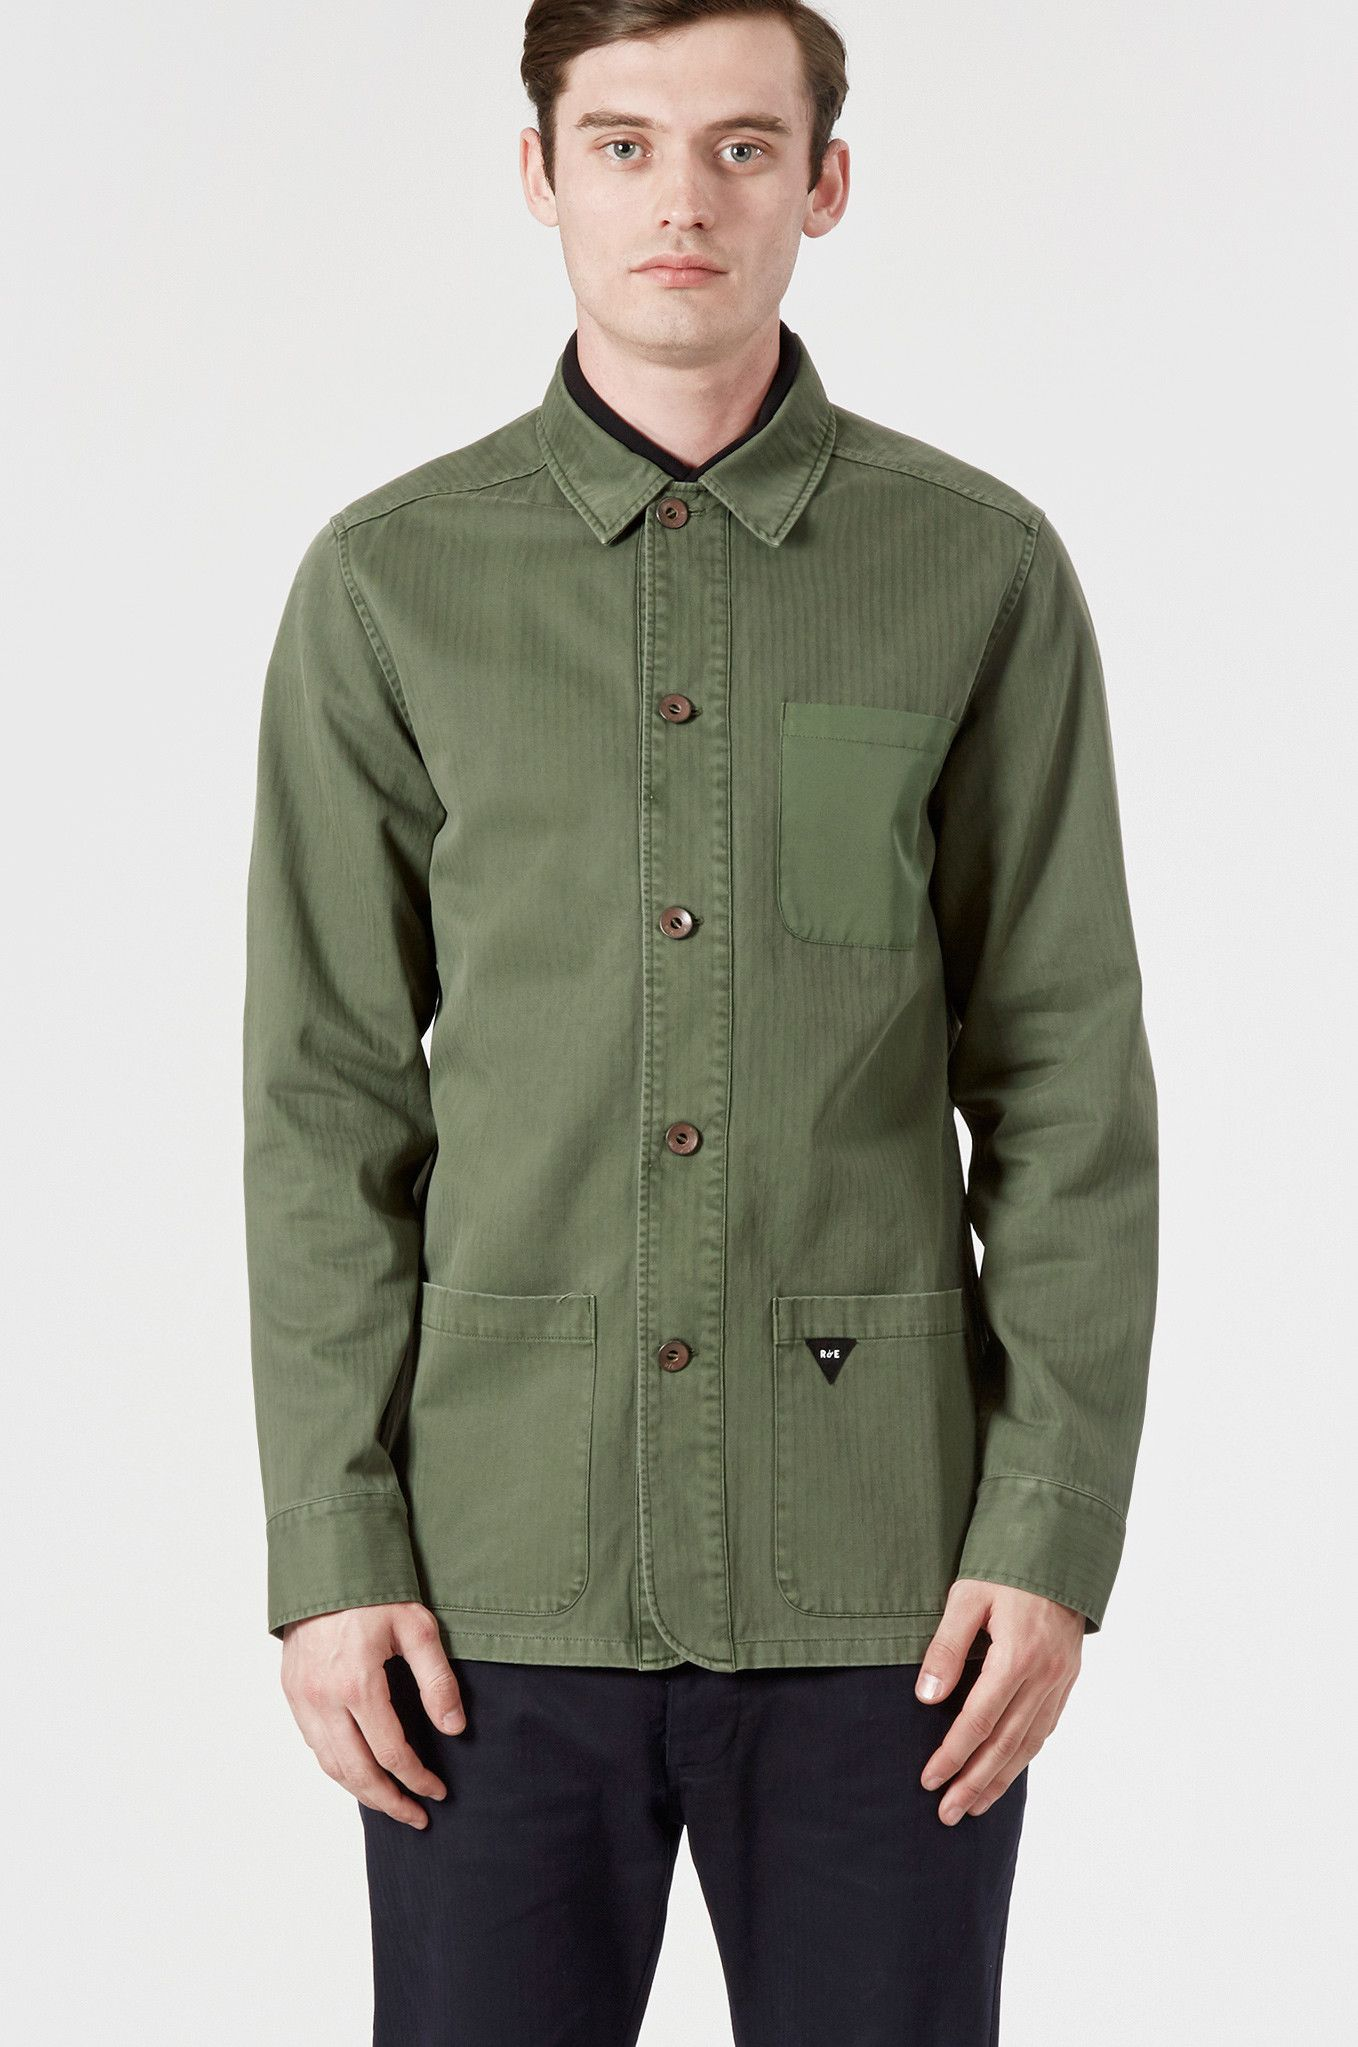 Khaki Green Olive Overshirt | Lightweight Jacket | Realm & Empire ...